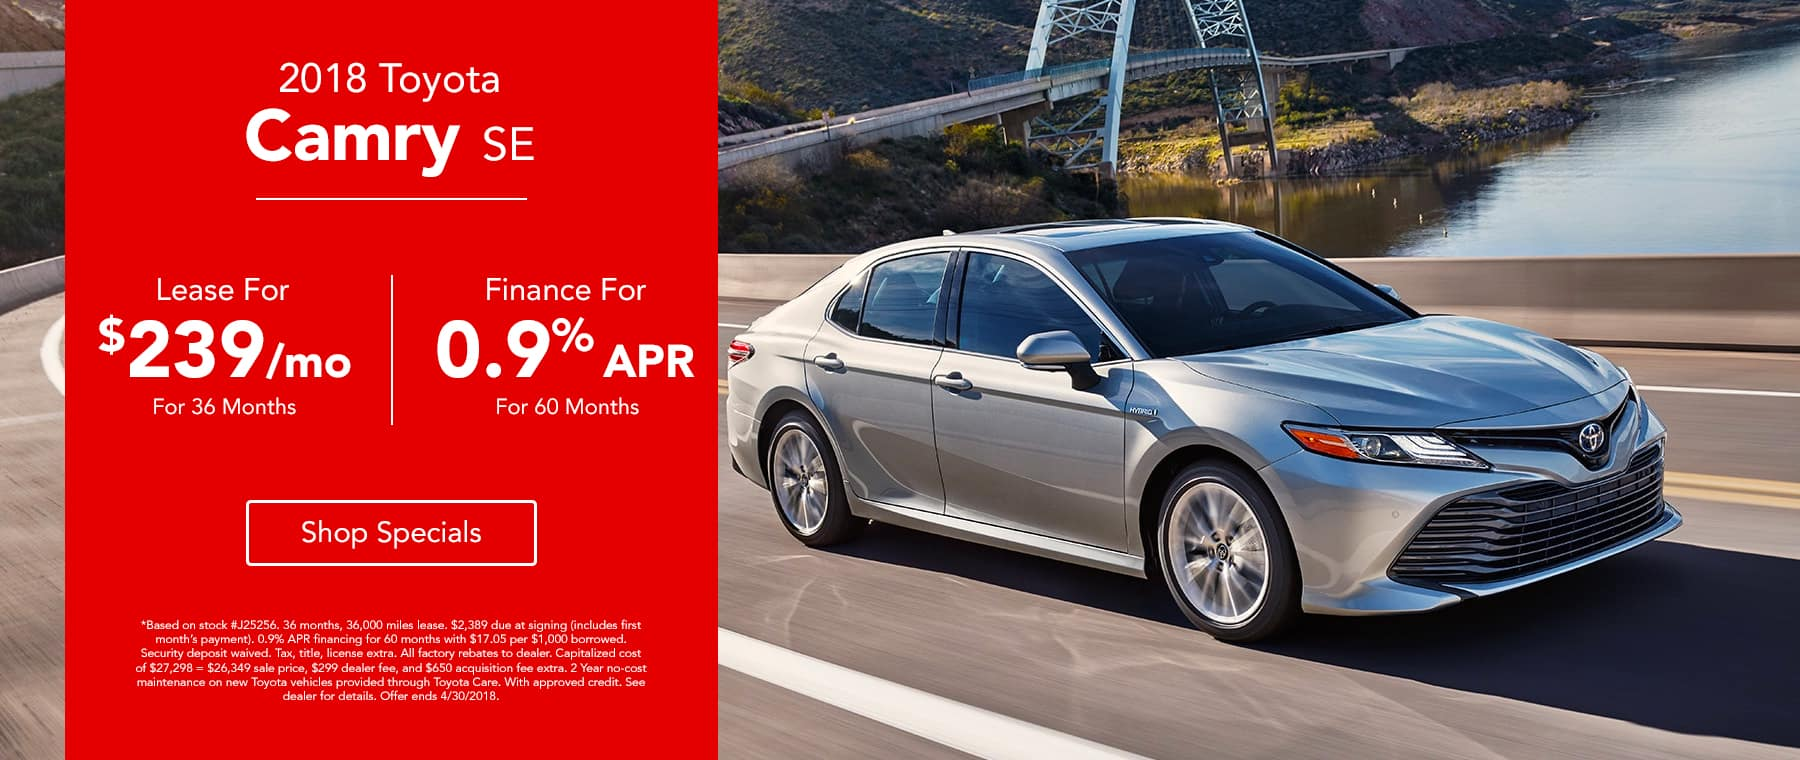 2018 Toyota Camry - Lease for $239/mo